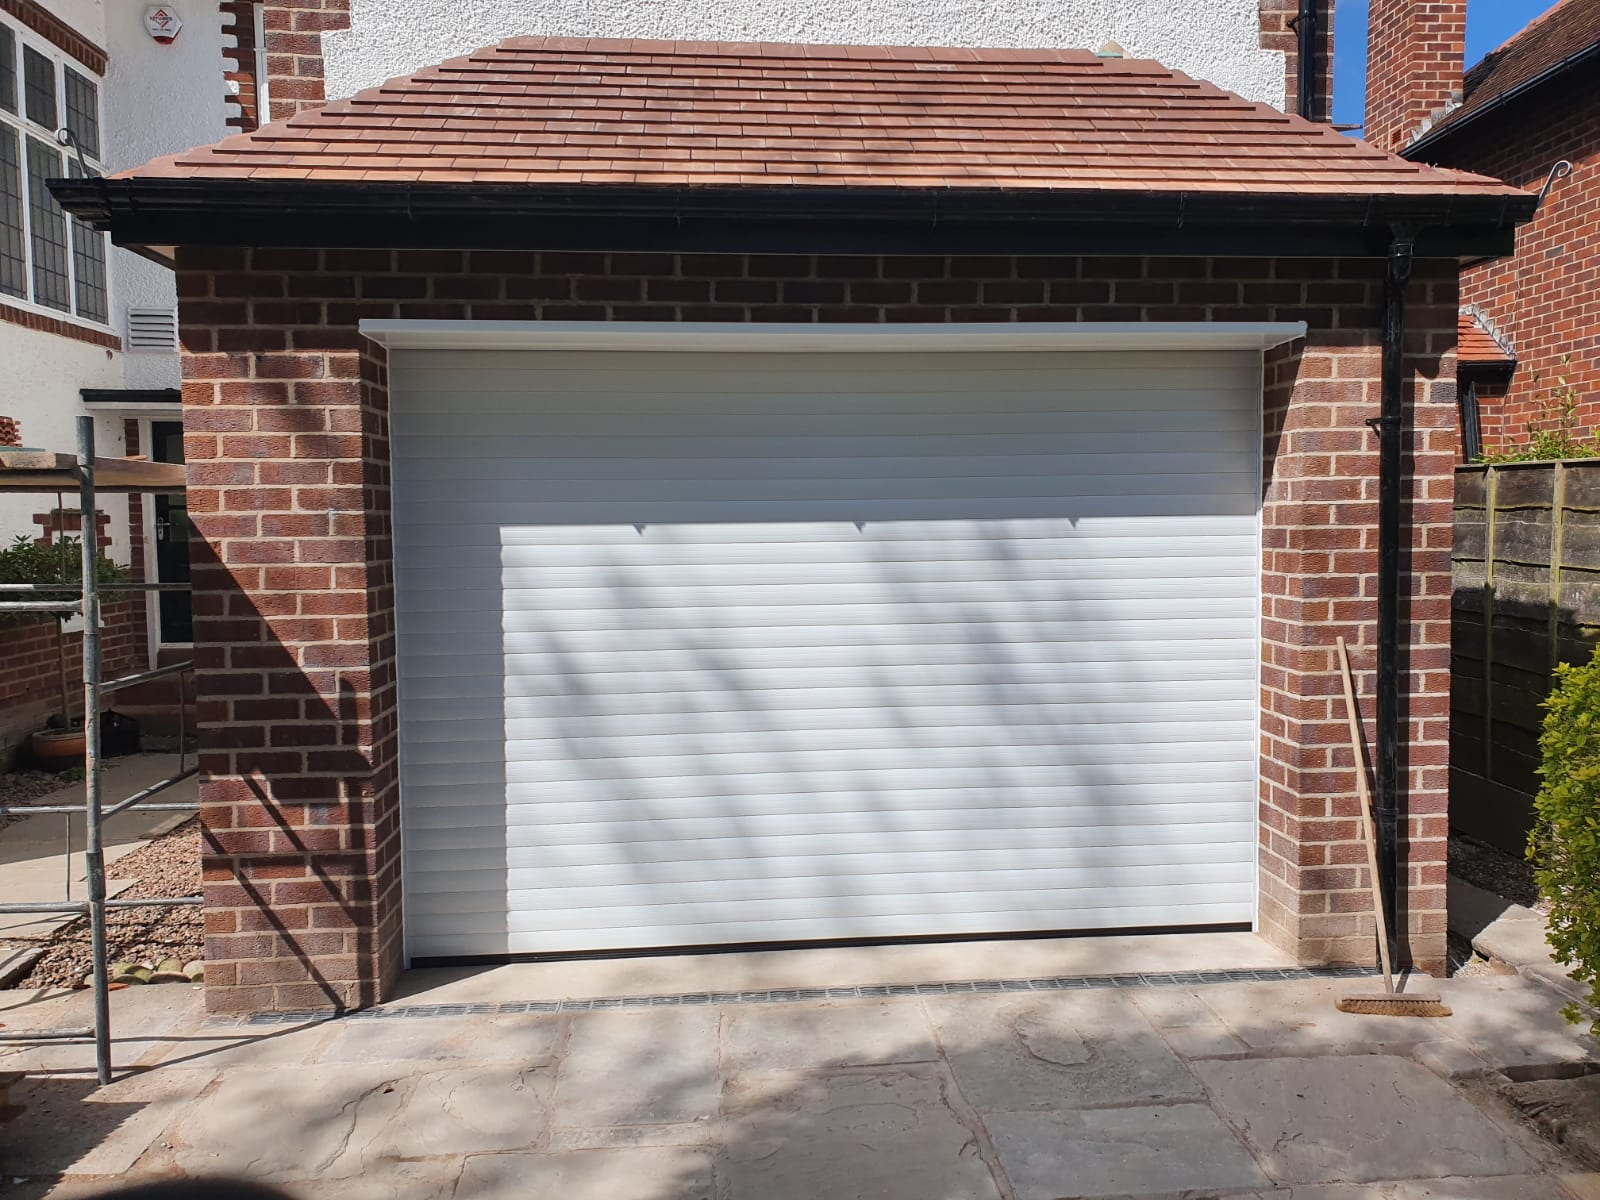 77mm insulated stylish roller door in white with a matching kit. Door is electrically operated, complete with 1 motor, 2 handsets, 1 remote unit and 1 standard hand-wind.